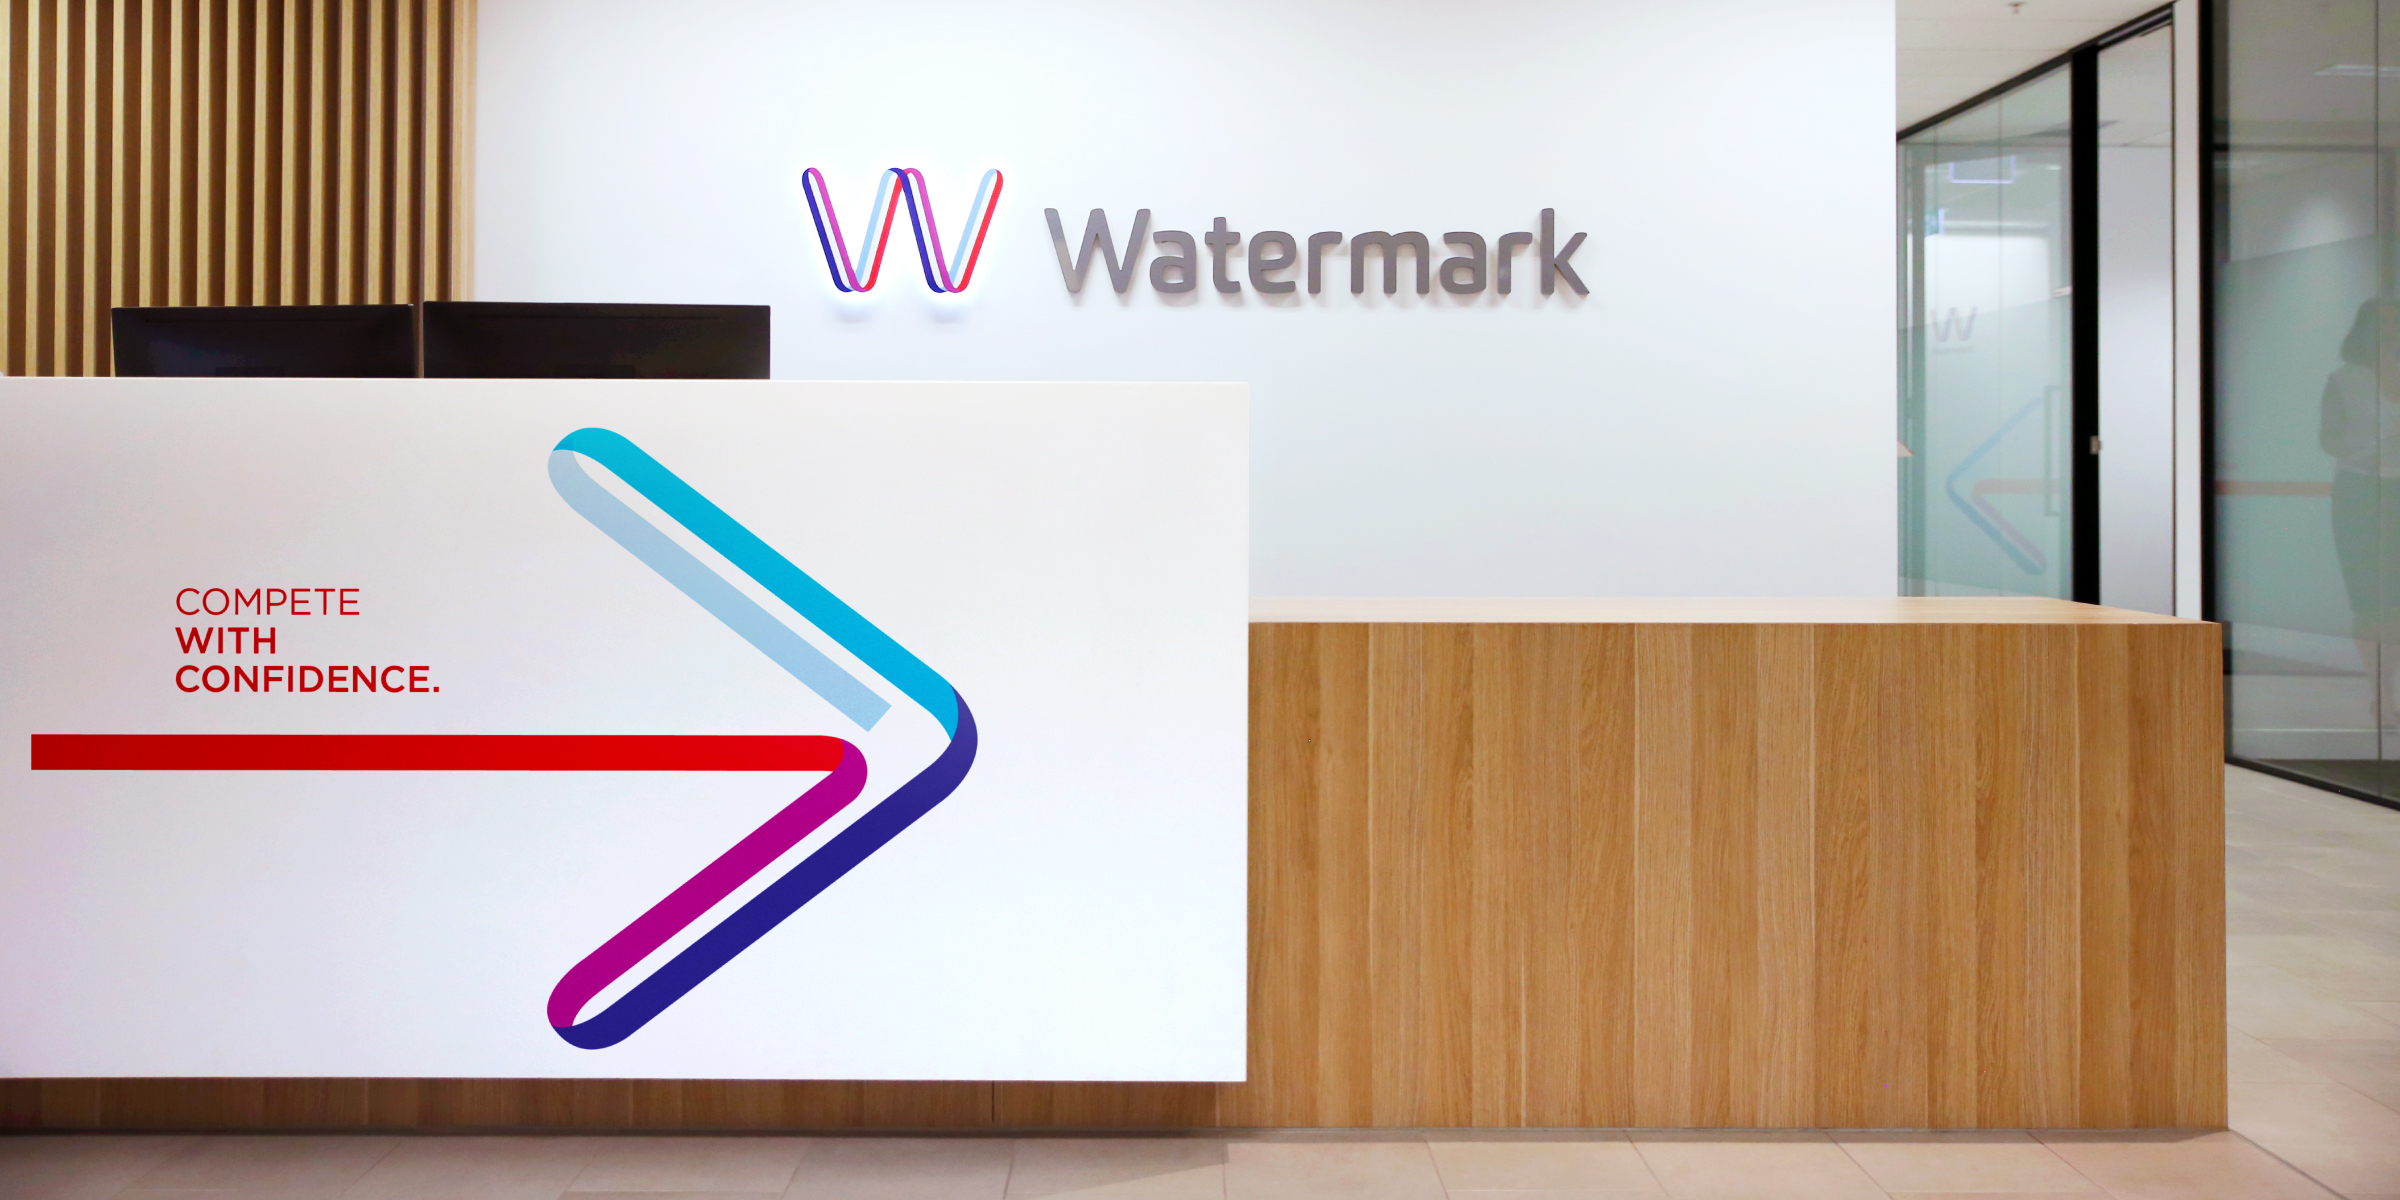 Watermark Brand Identity Arrow Graphic Interior Signage Design